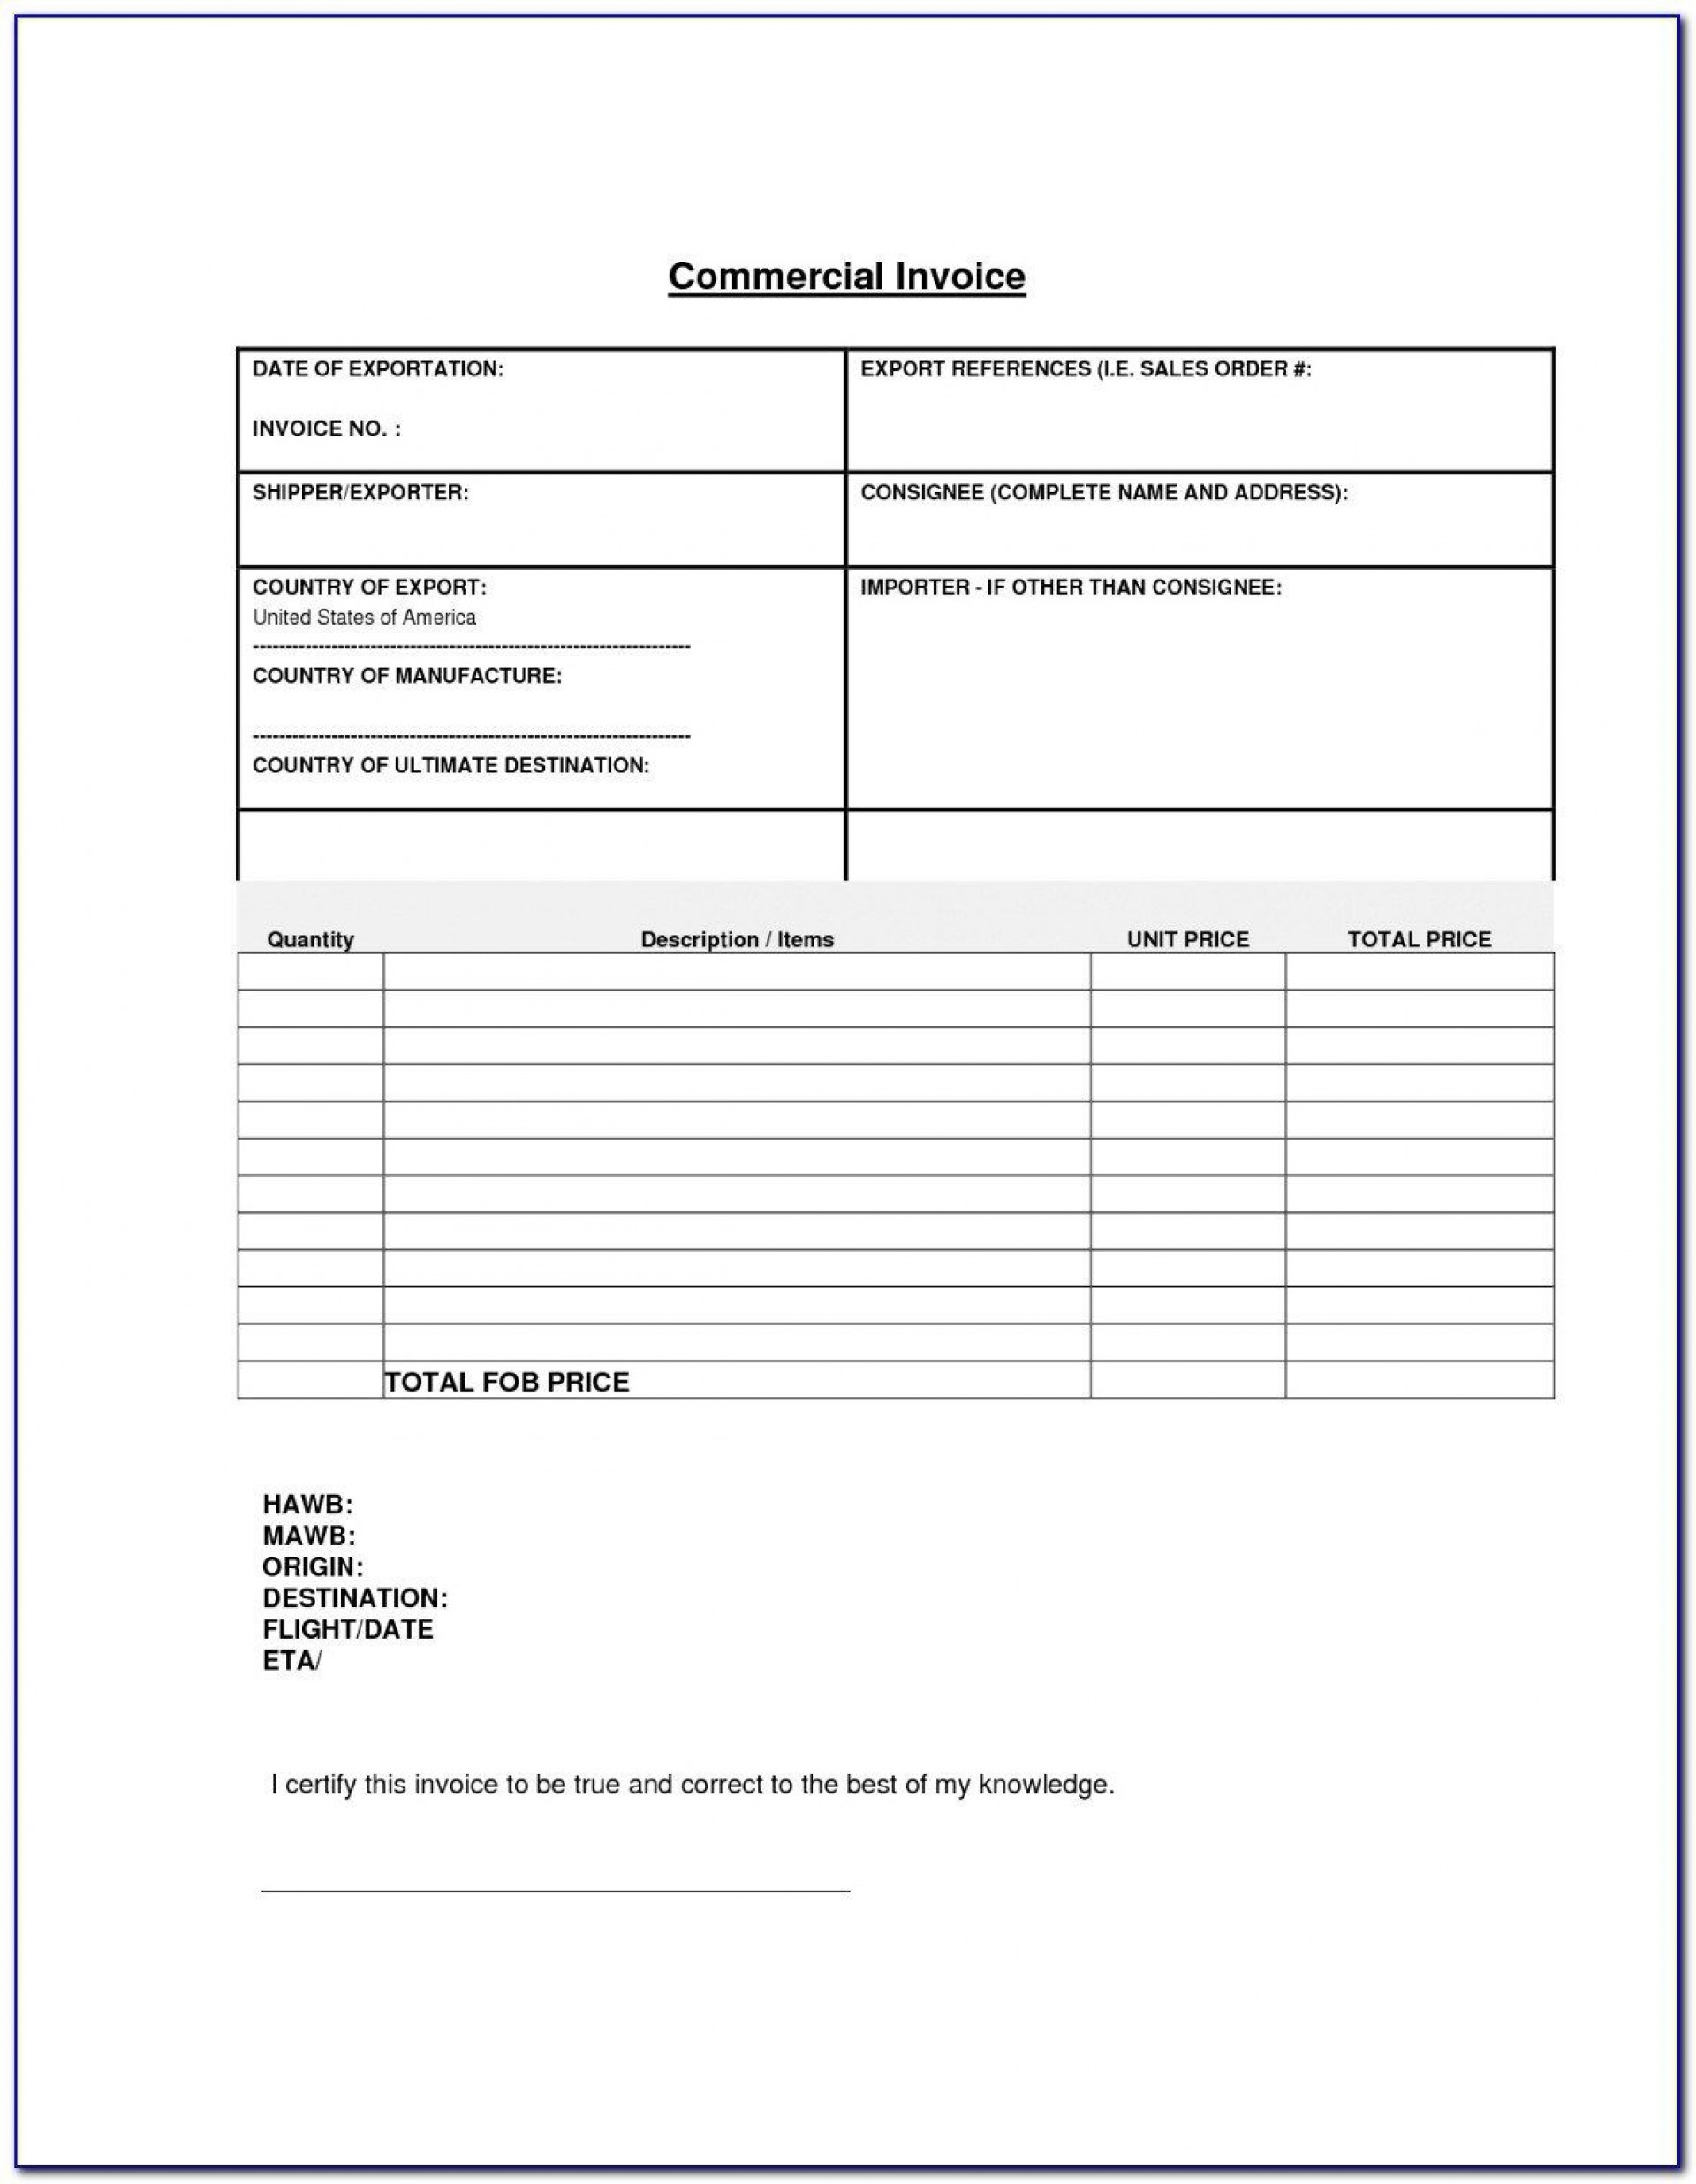 004 Awful Free Tax Invoice Template Excel South Africa Sample 1920